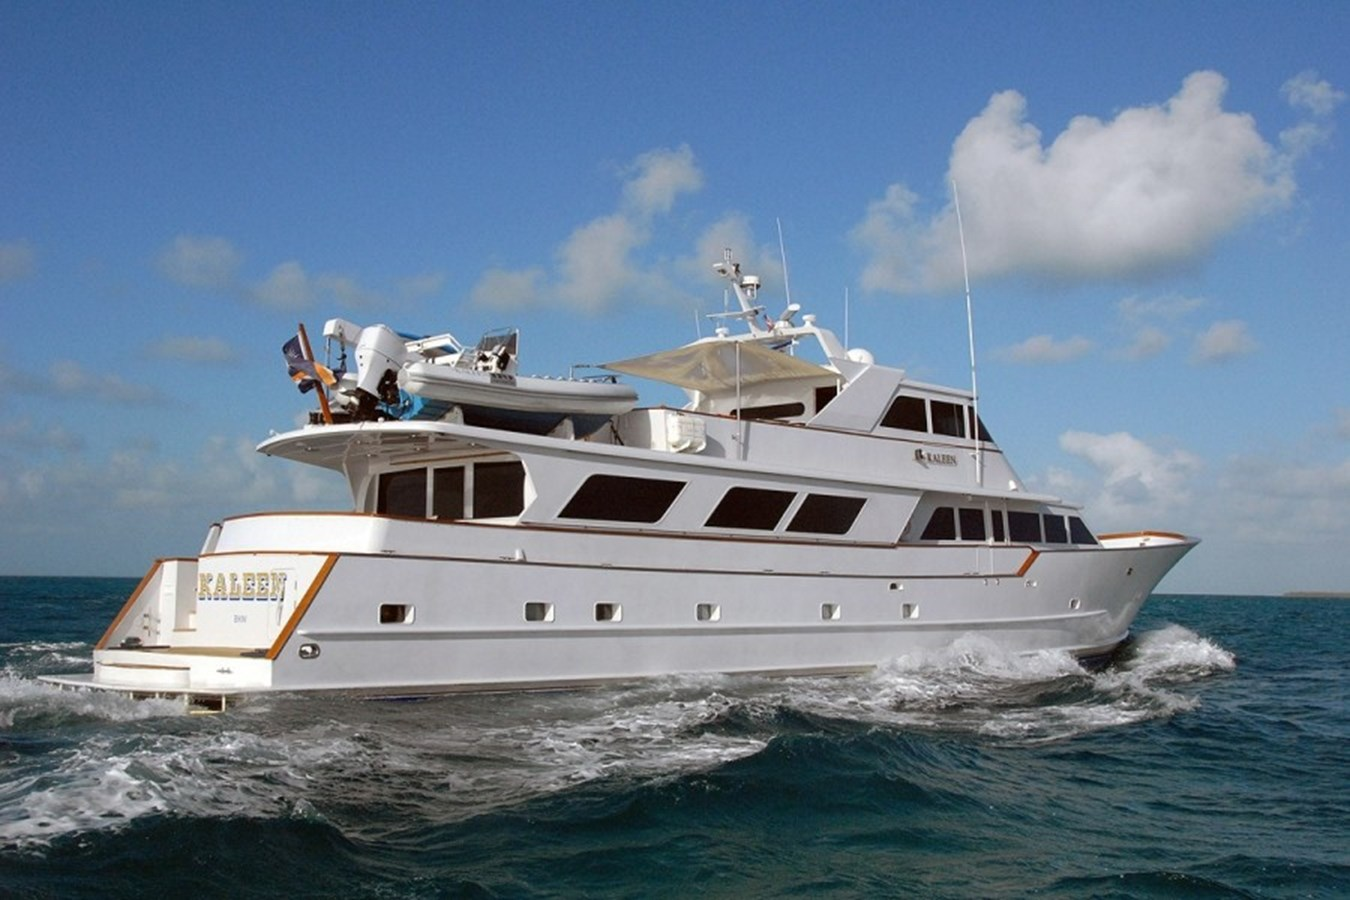 KALEEN yacht for sale